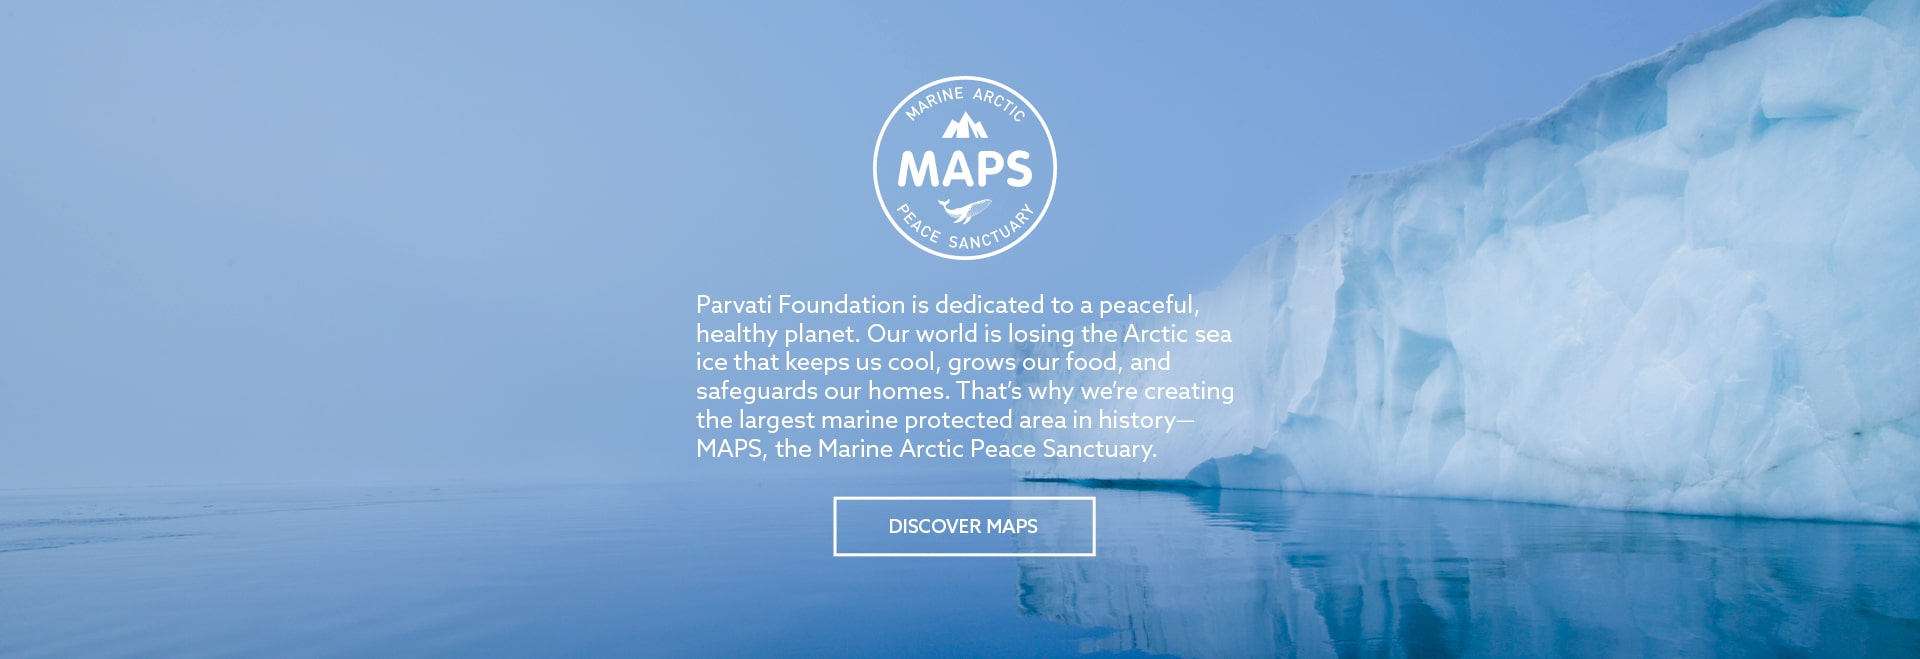 Parvati Foundation, MAPS, the Marine Arctic Peace Sanctuary